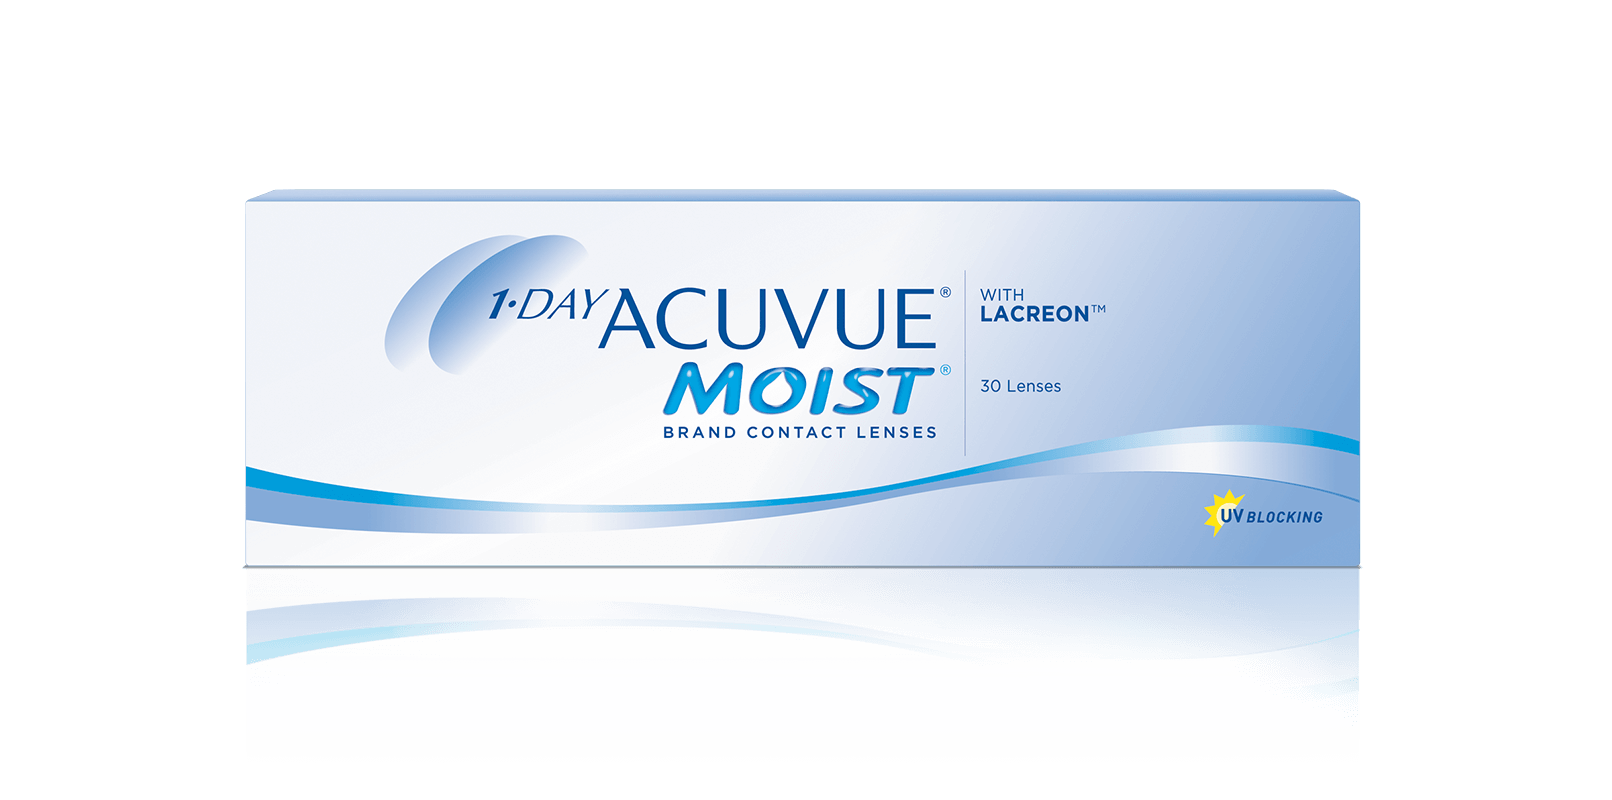 acuvue_0004_moist-1.png